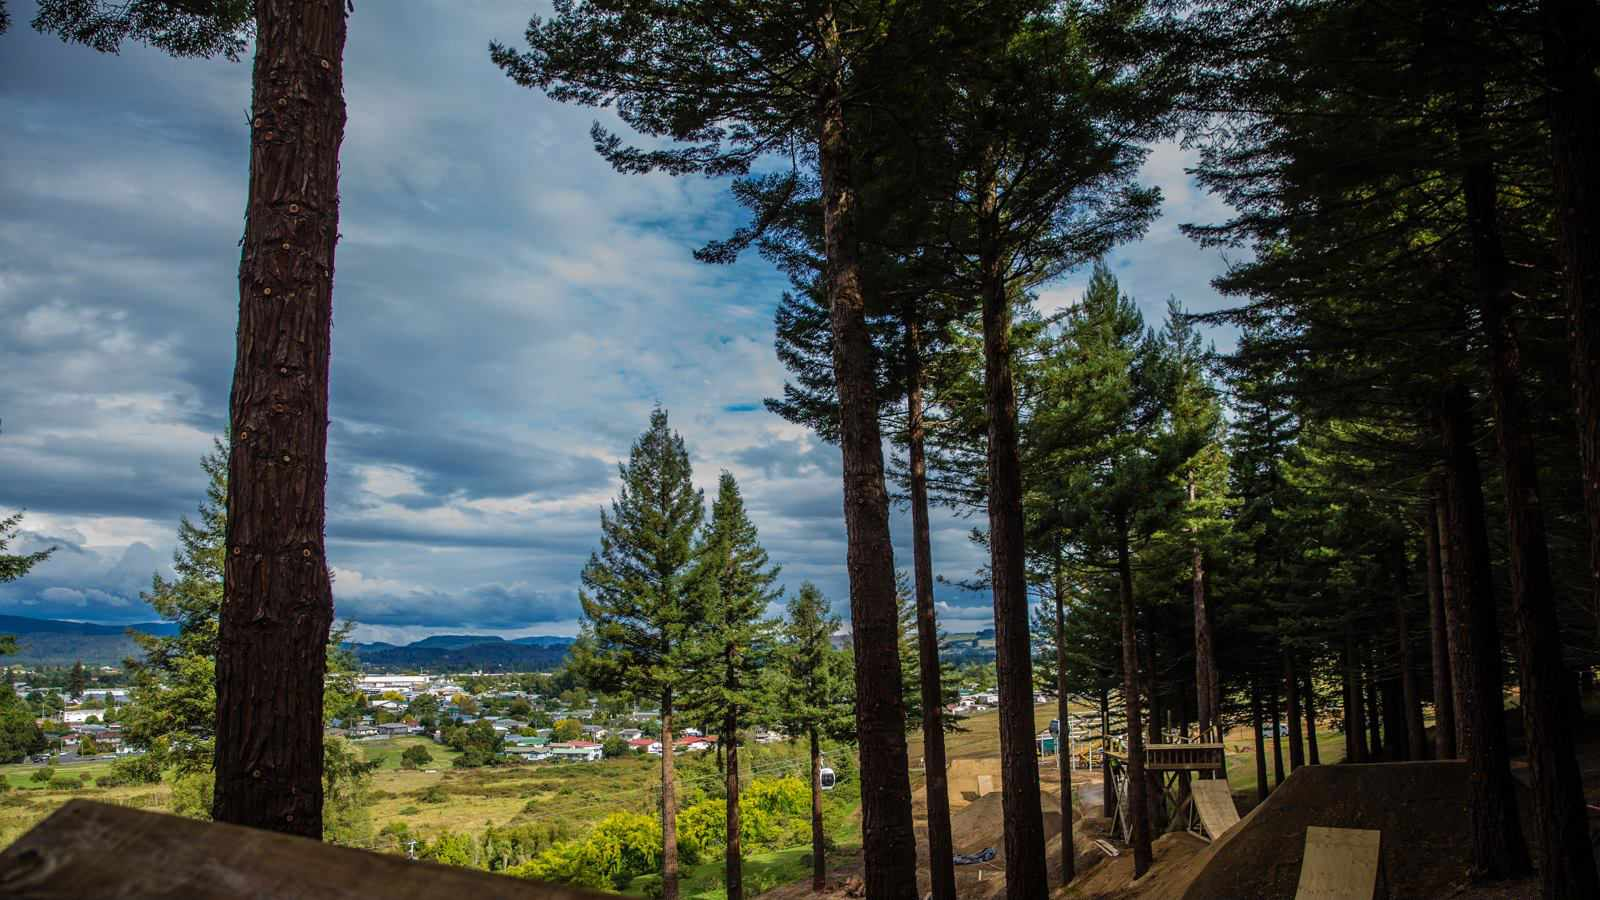 The Crankworx Rotorua course is looking crazy!